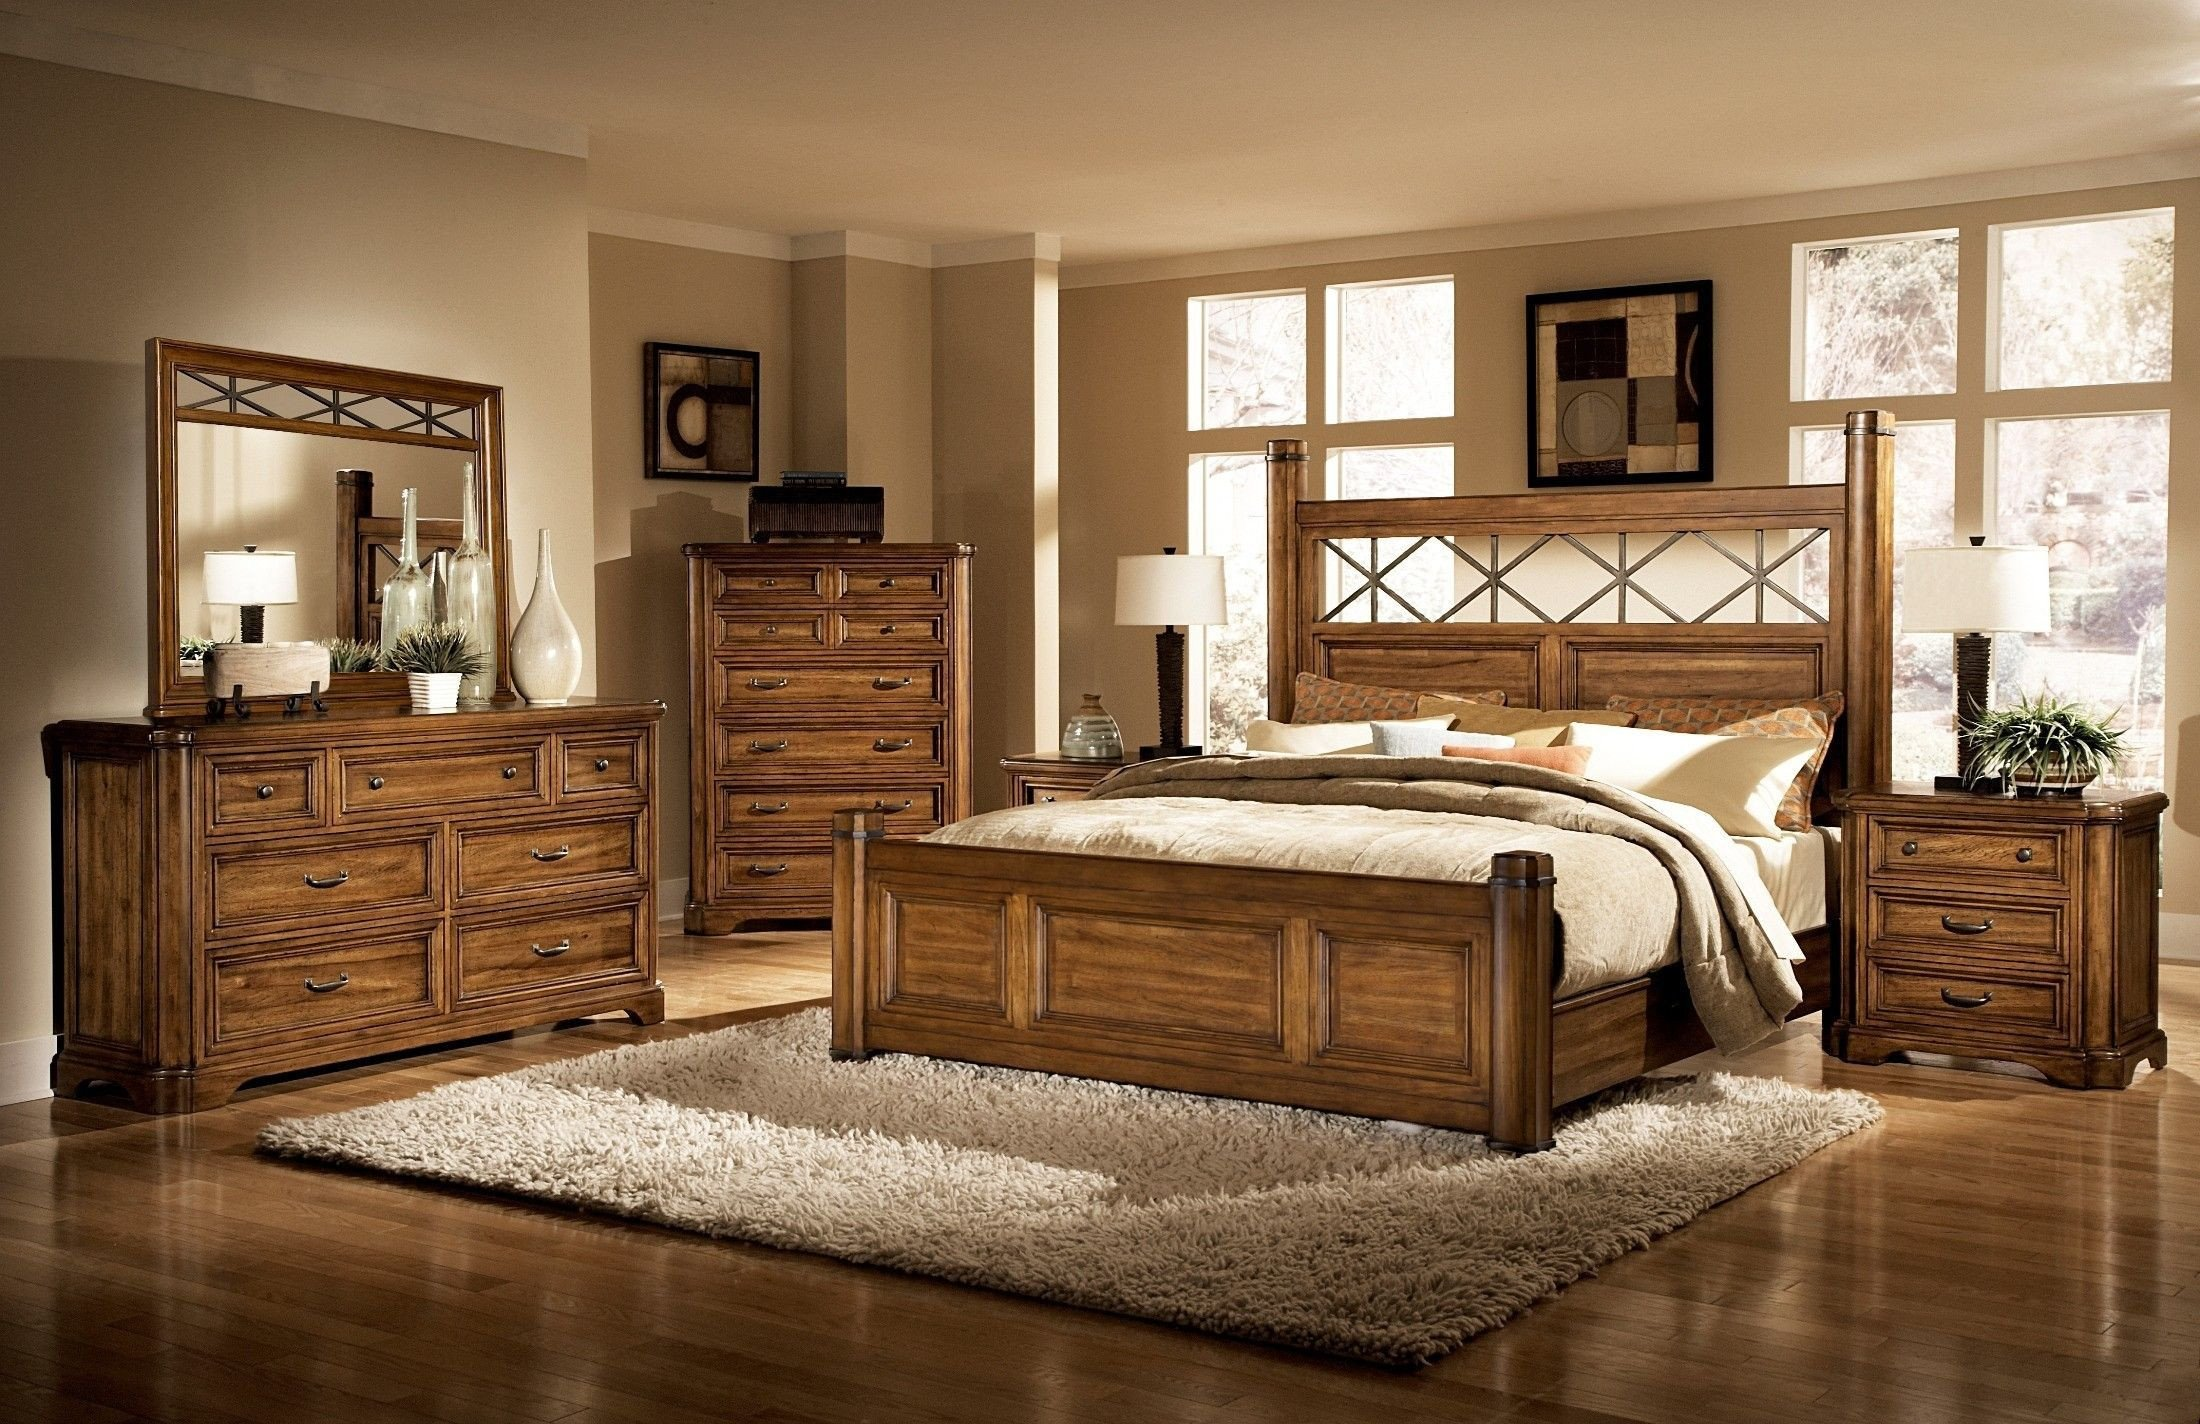 Girls Queen Bedroom Set Awesome Copper Ridge Queen Bed Luxury Furniture Beds